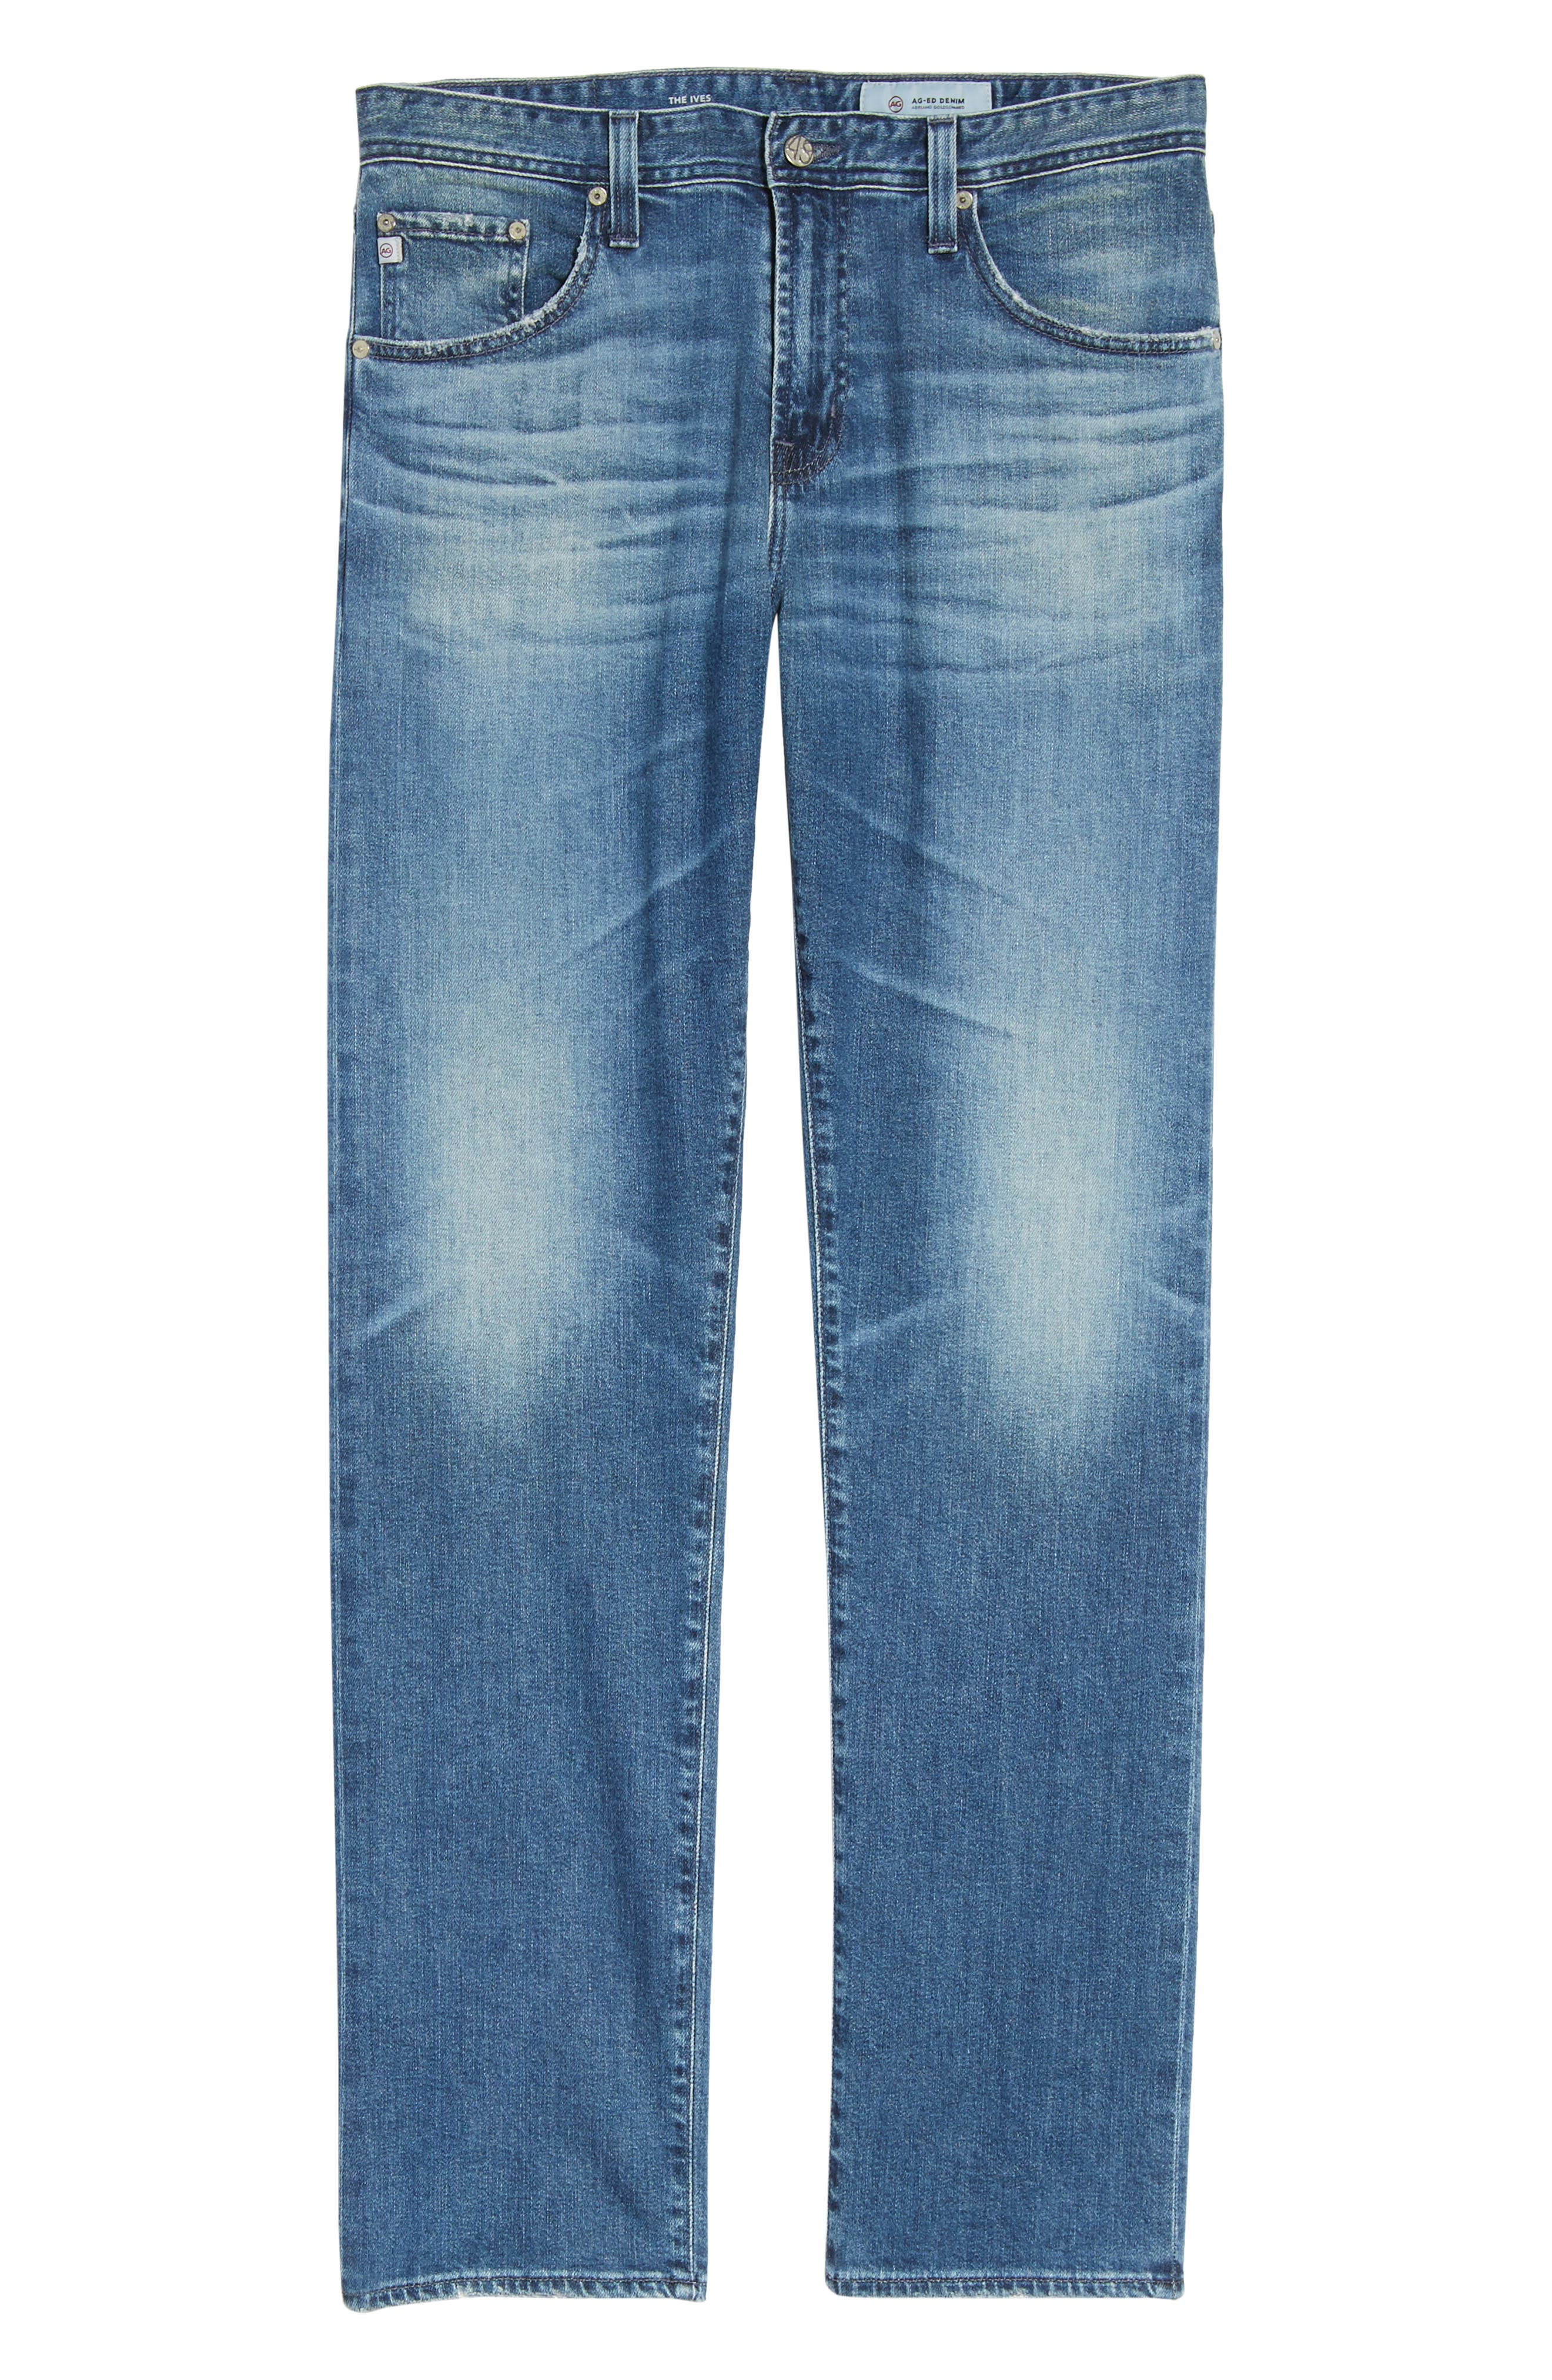 Ives Straight Fit Jeans,                             Alternate thumbnail 6, color,                             468